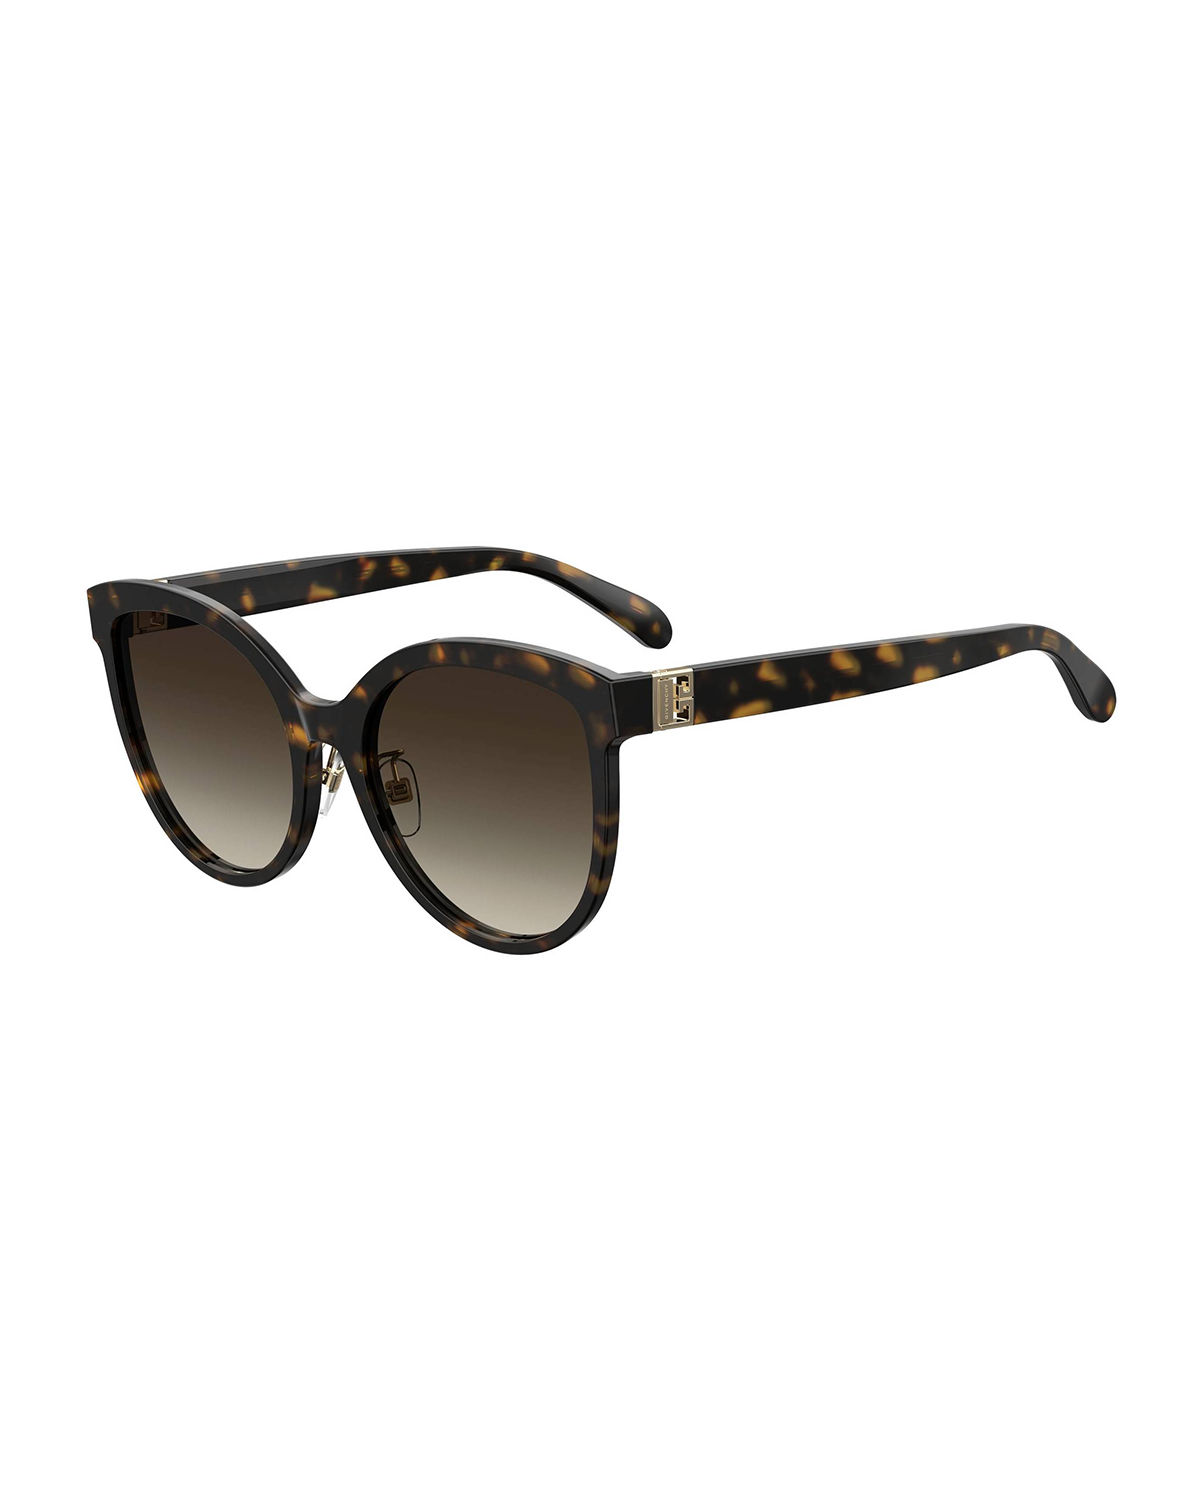 Givenchy Sunglasses ROUND ACETATE SUNGLASSES